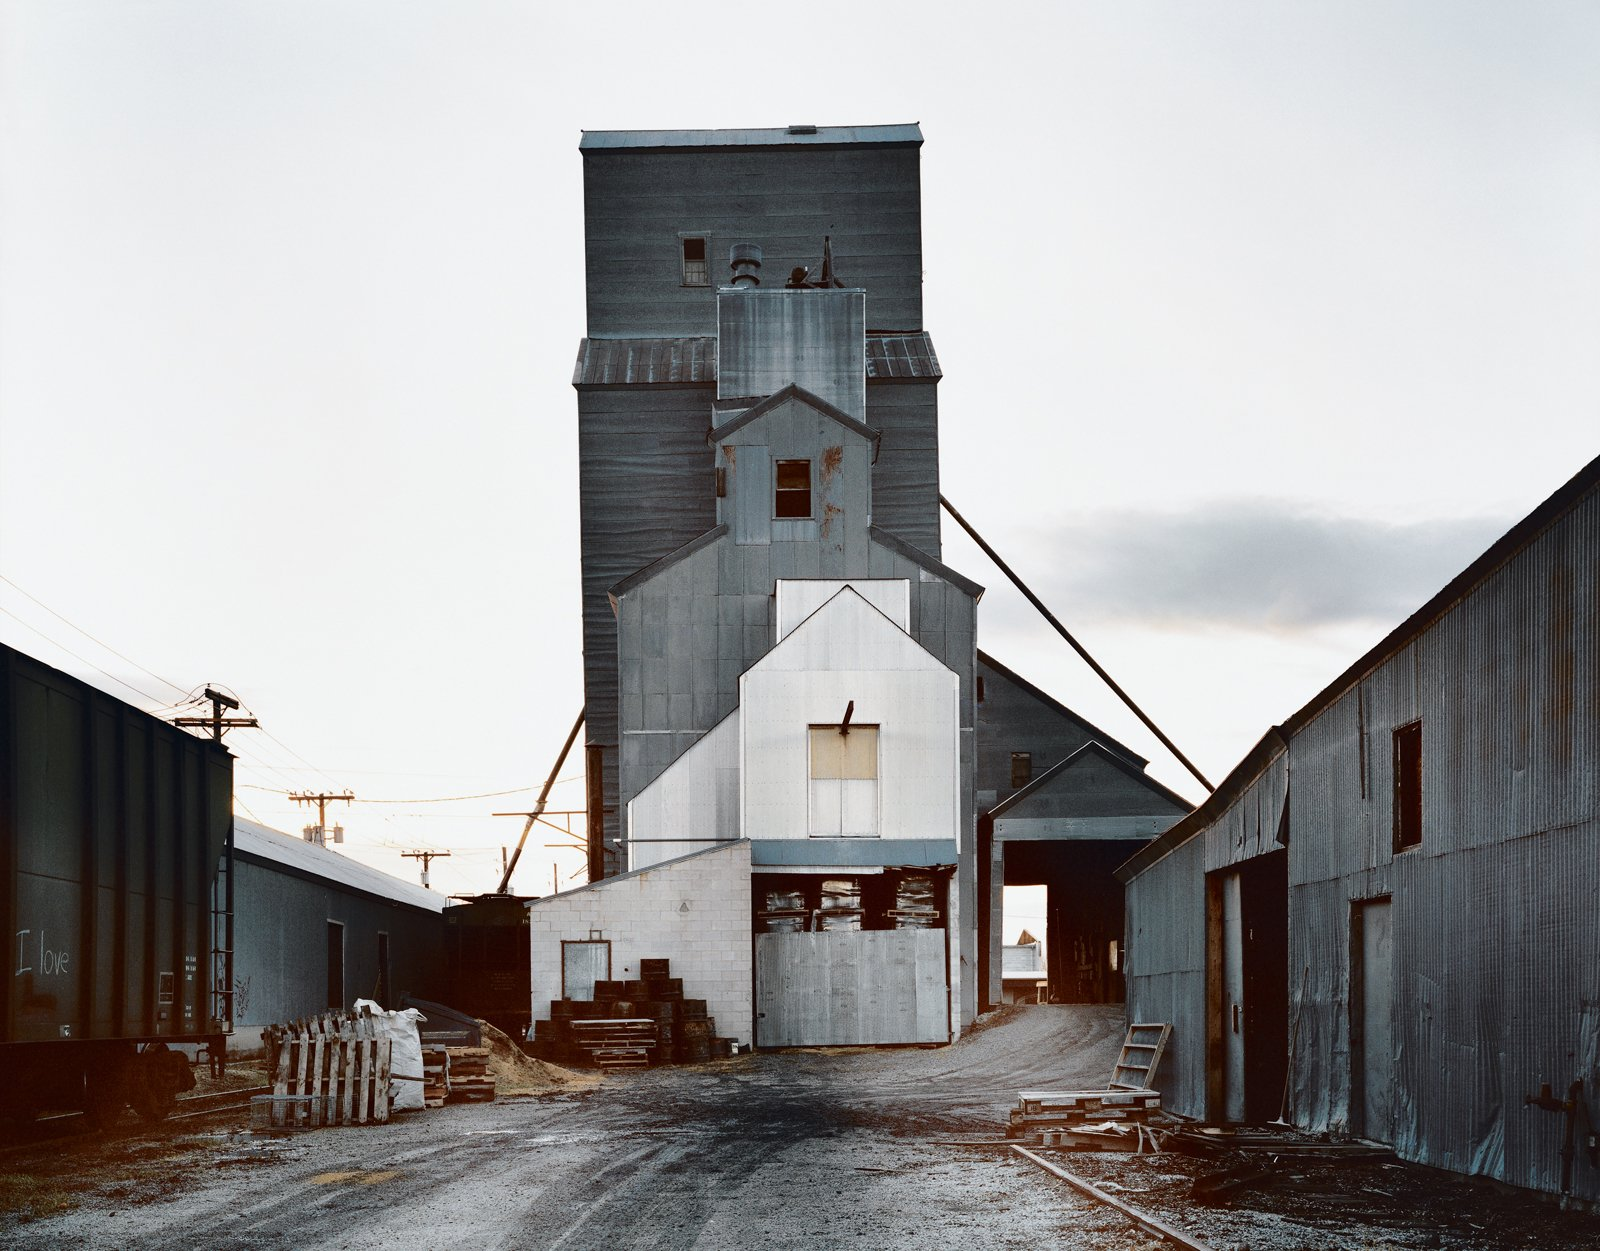 """Cho spends much of the year in Bozeman teaching at Montana State. The vernacular architecture, like the grain-storage facility shown here, provides much inspiration for his work.  Search """"byoung cho"""""""